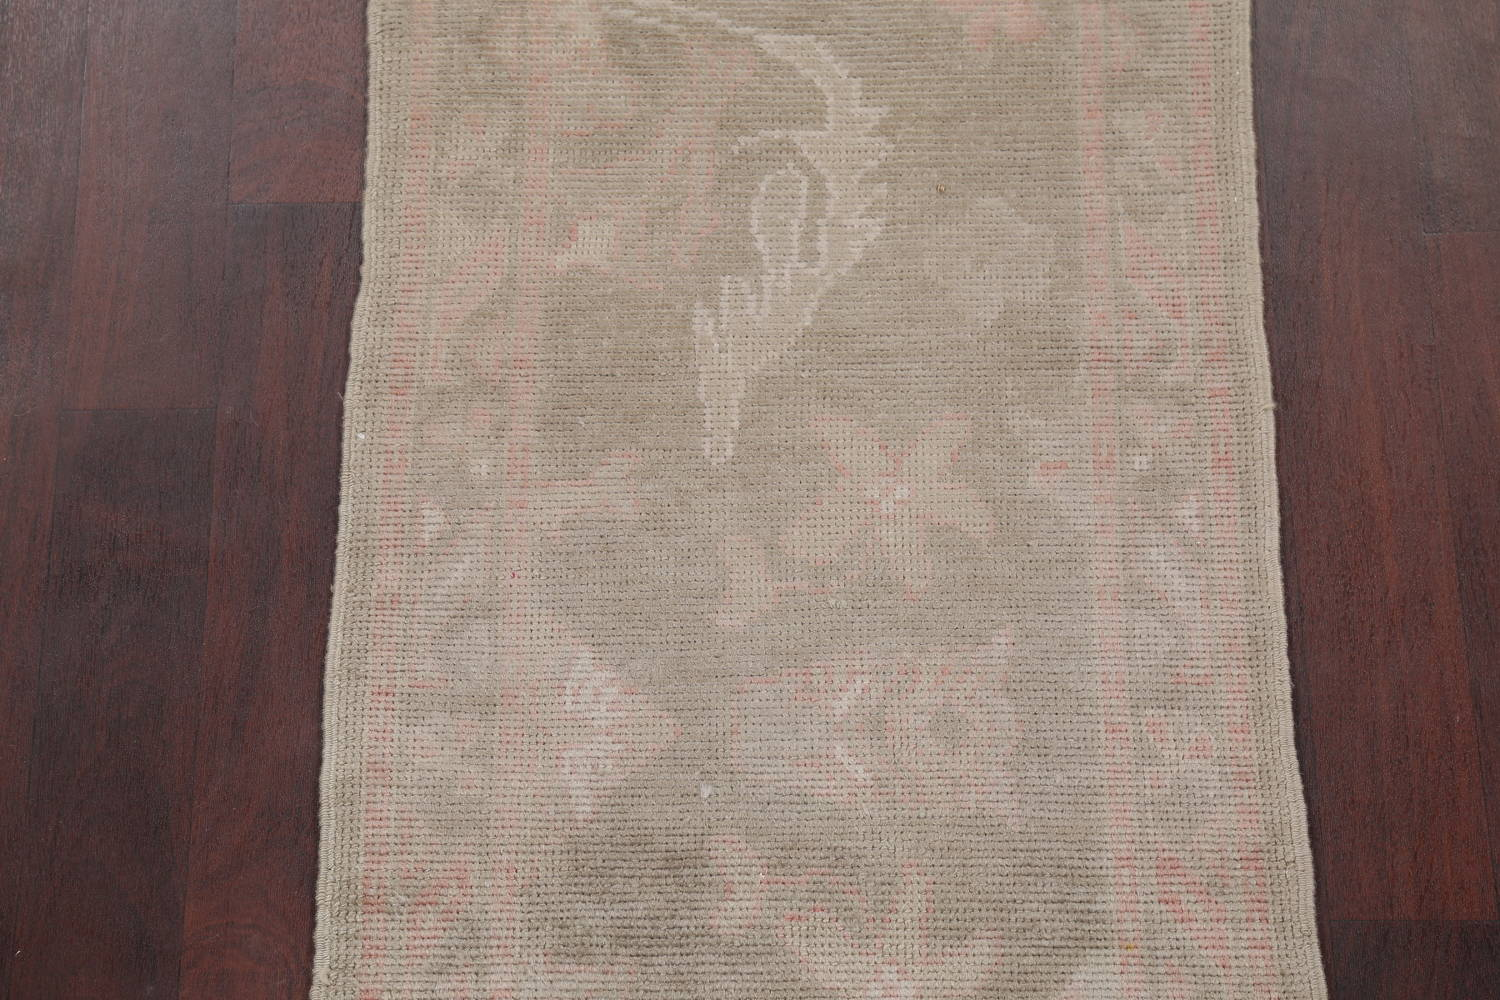 Vegetable Dye Muted Green Oushak Turkish Hand-Knotted Runner Rug 2x12 image 4